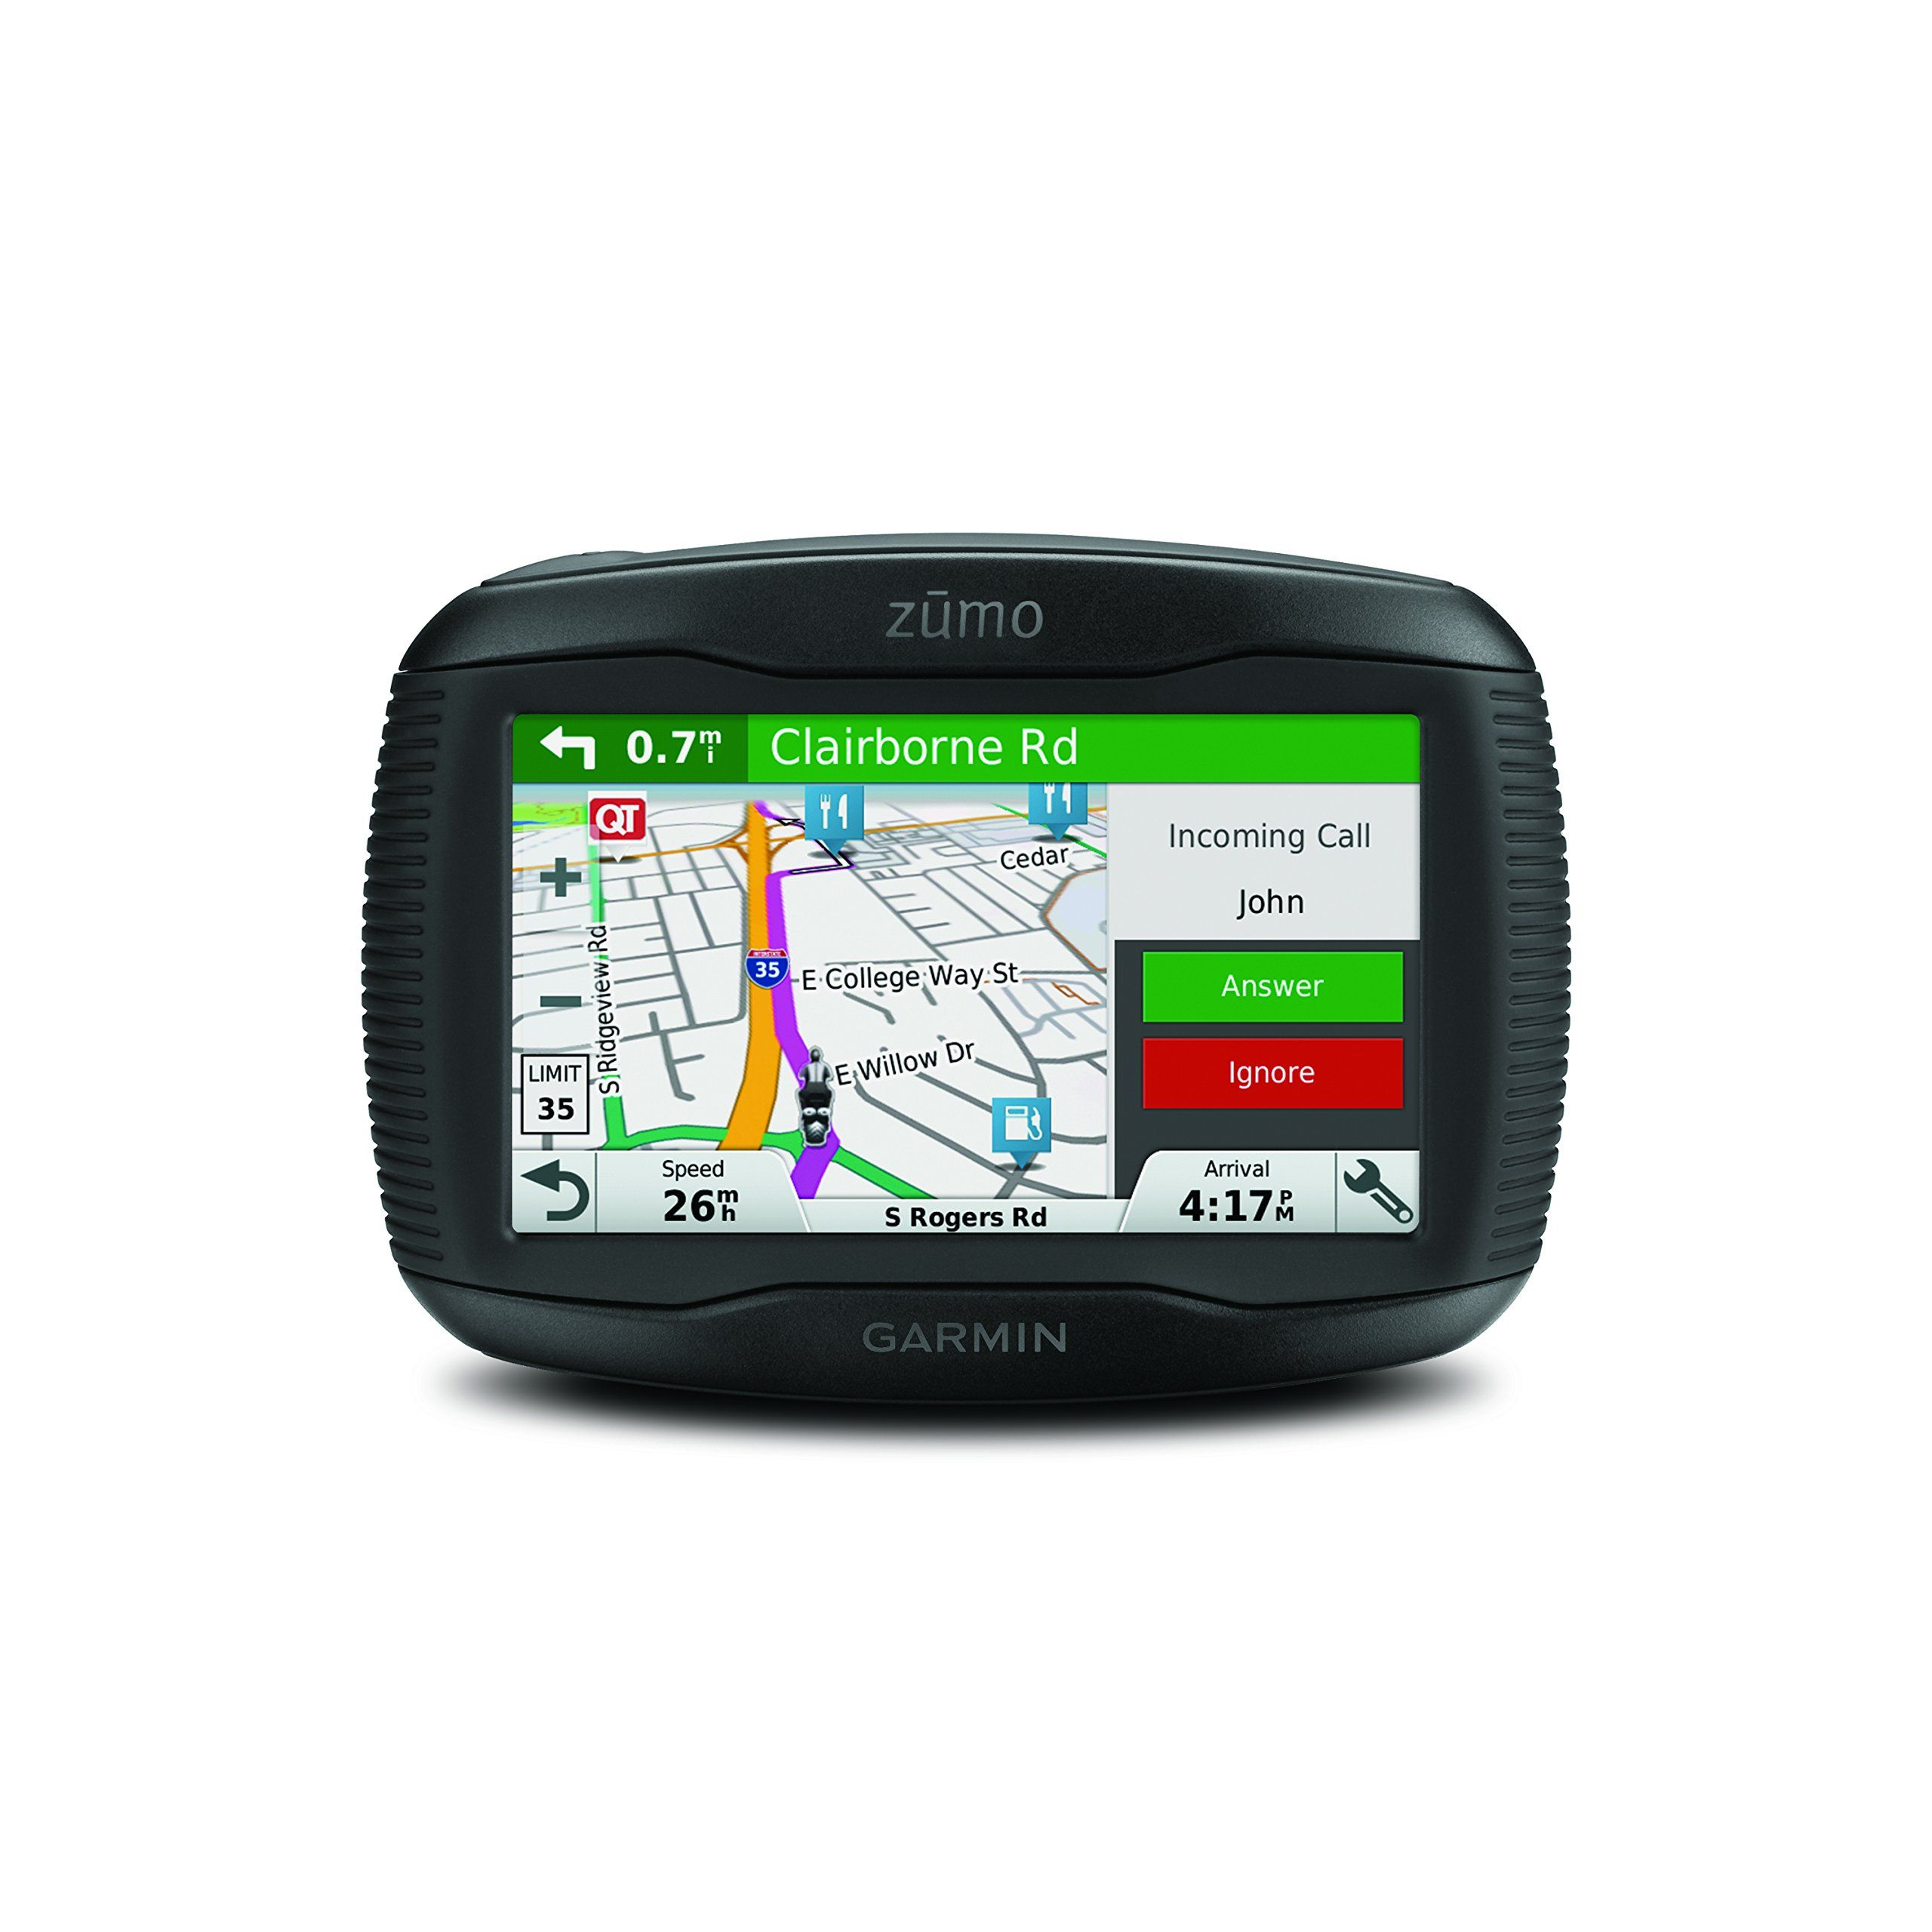 The Garmin Zumo 395lm Motorcycle Gps Is Undoubtedly Constructed Of